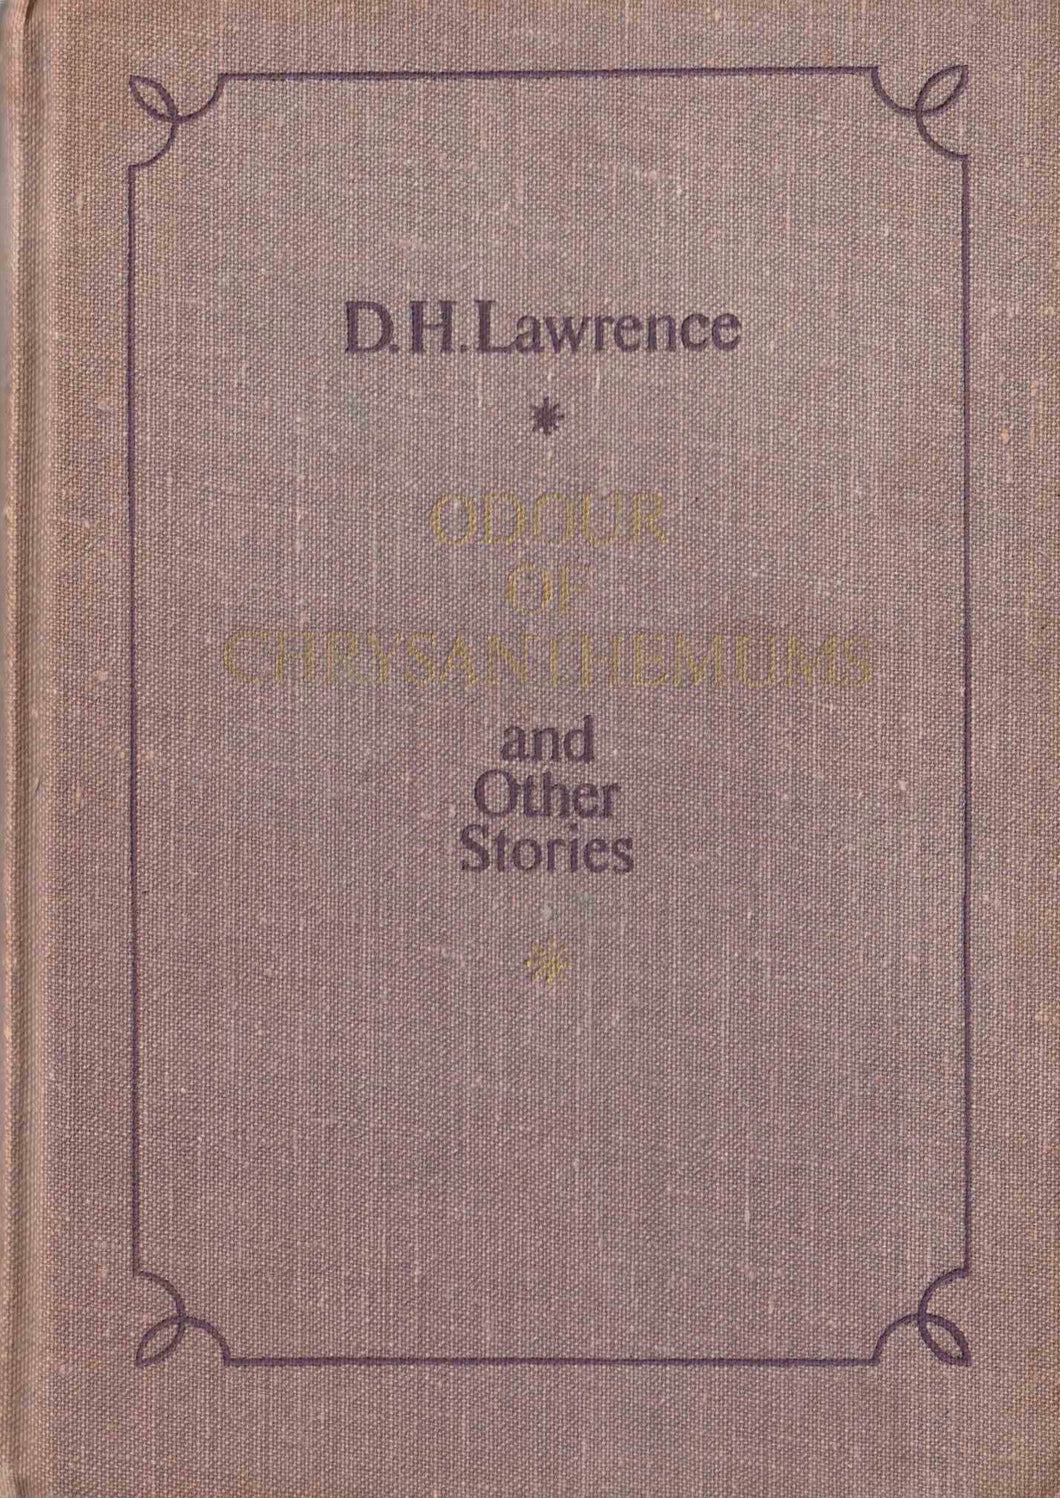 Odor of Chrsanthemums and Other Stories D H Lawrence